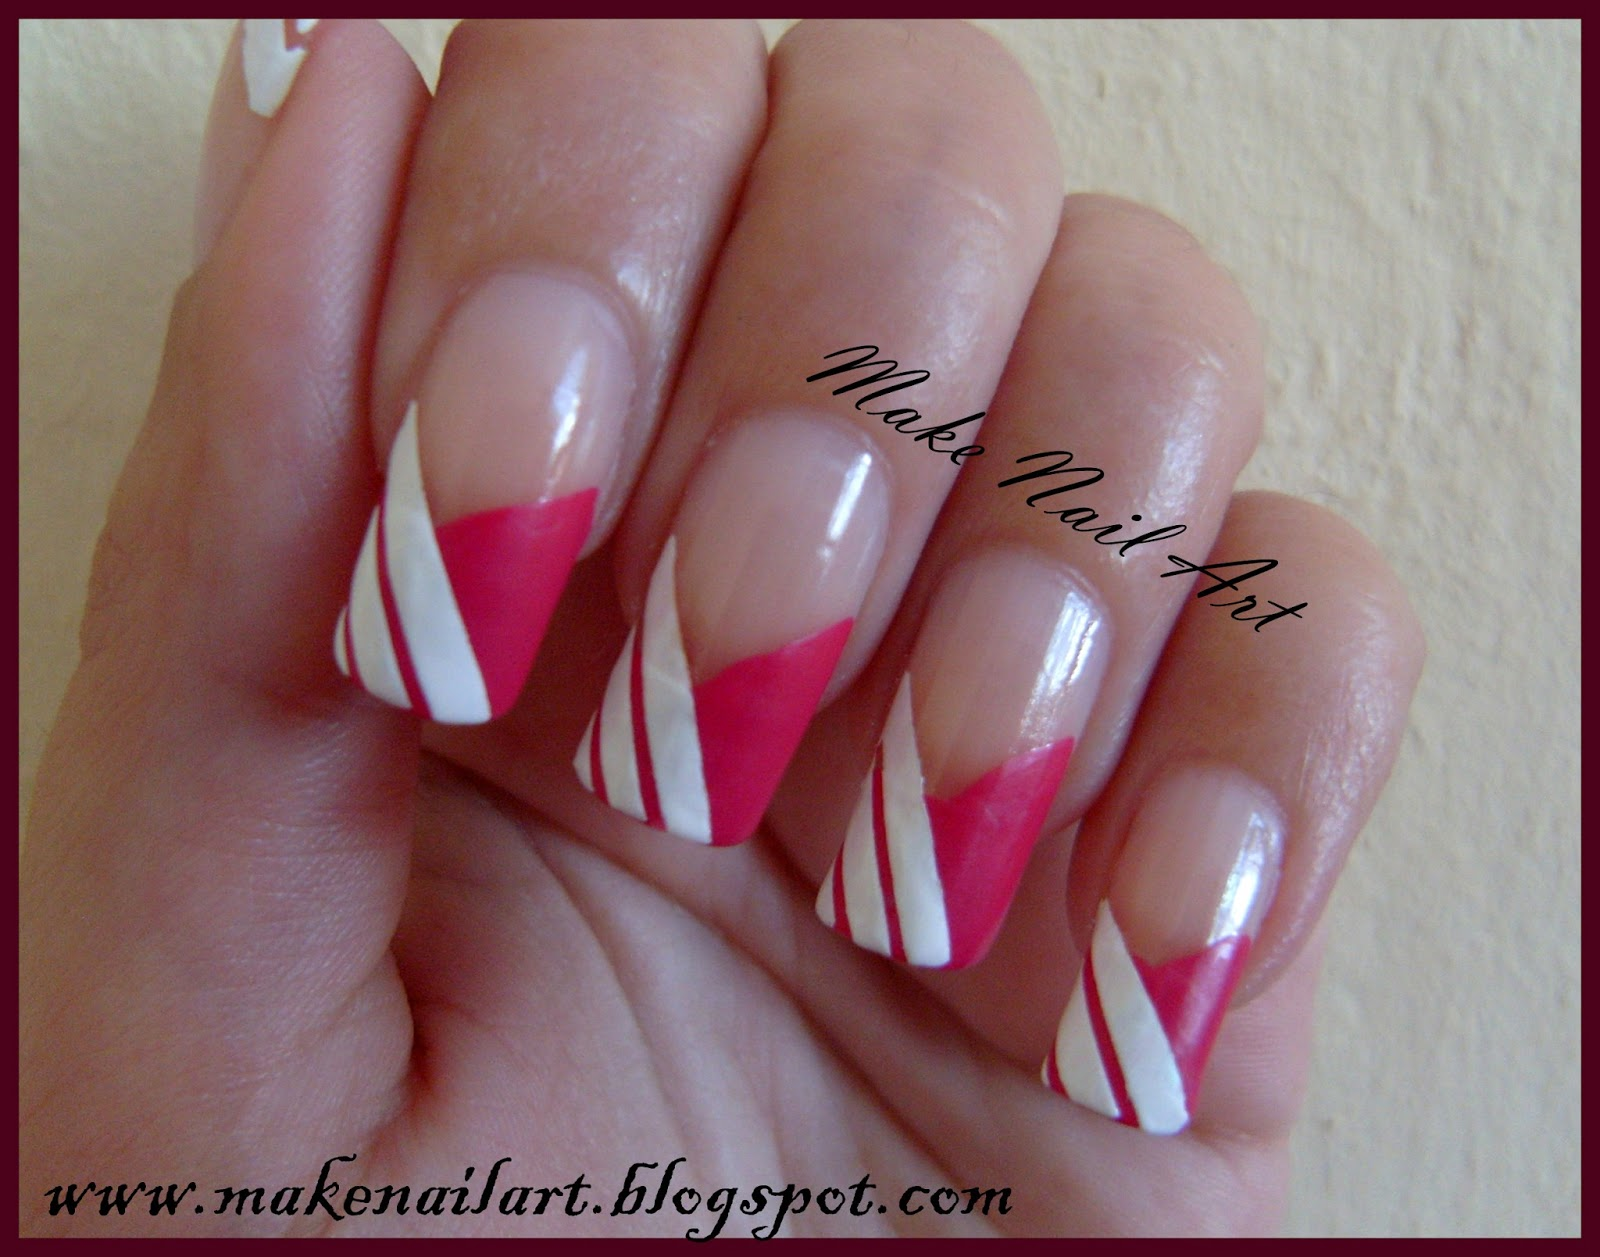 Make Nail Art: White And Pink French Manicure Nail Art Tutorial